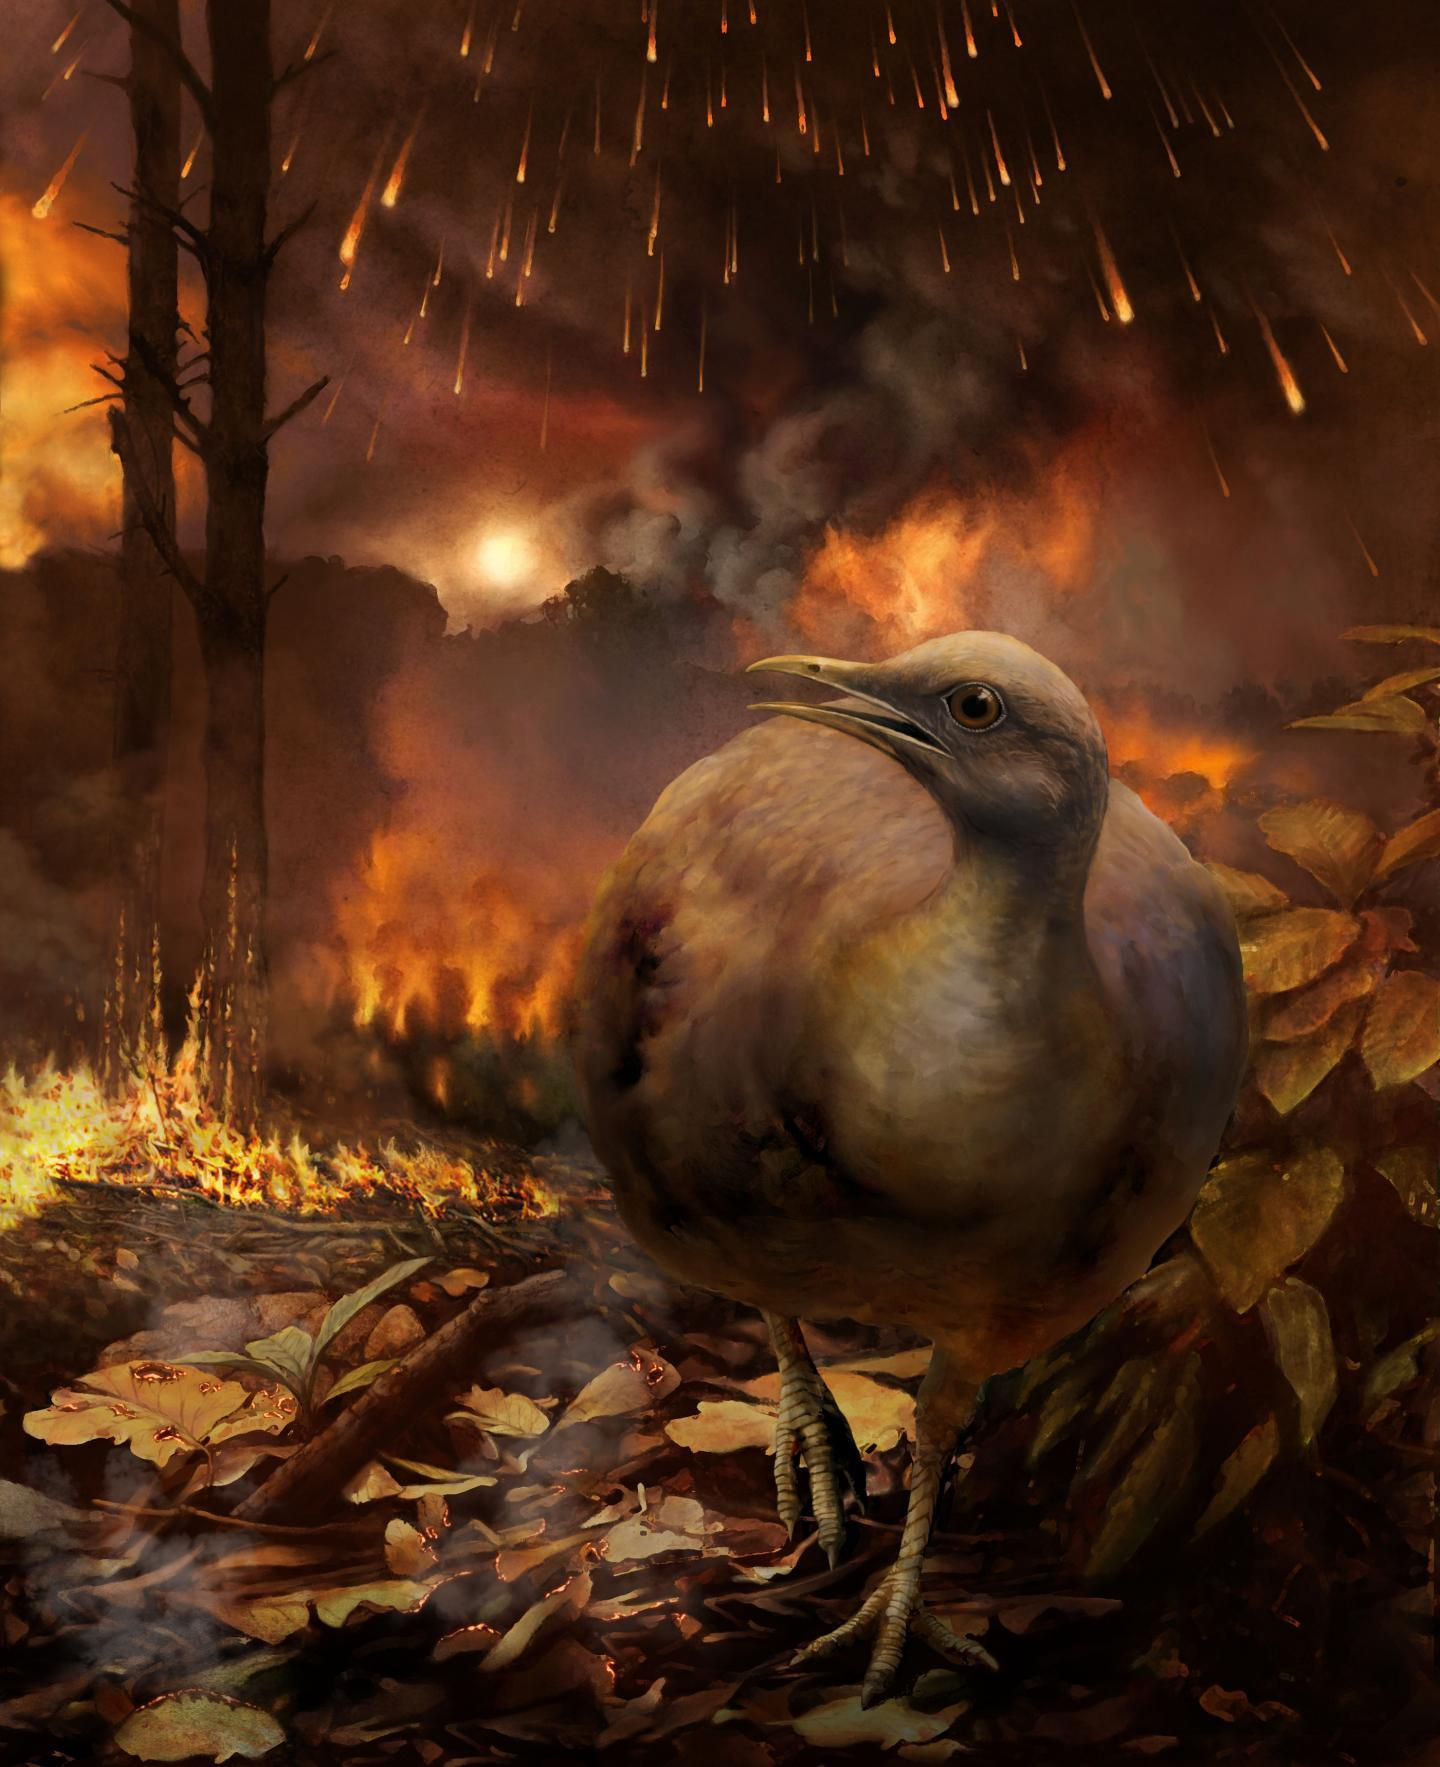 When the dinosaurs died, so did forests - and tree-dwelling birds